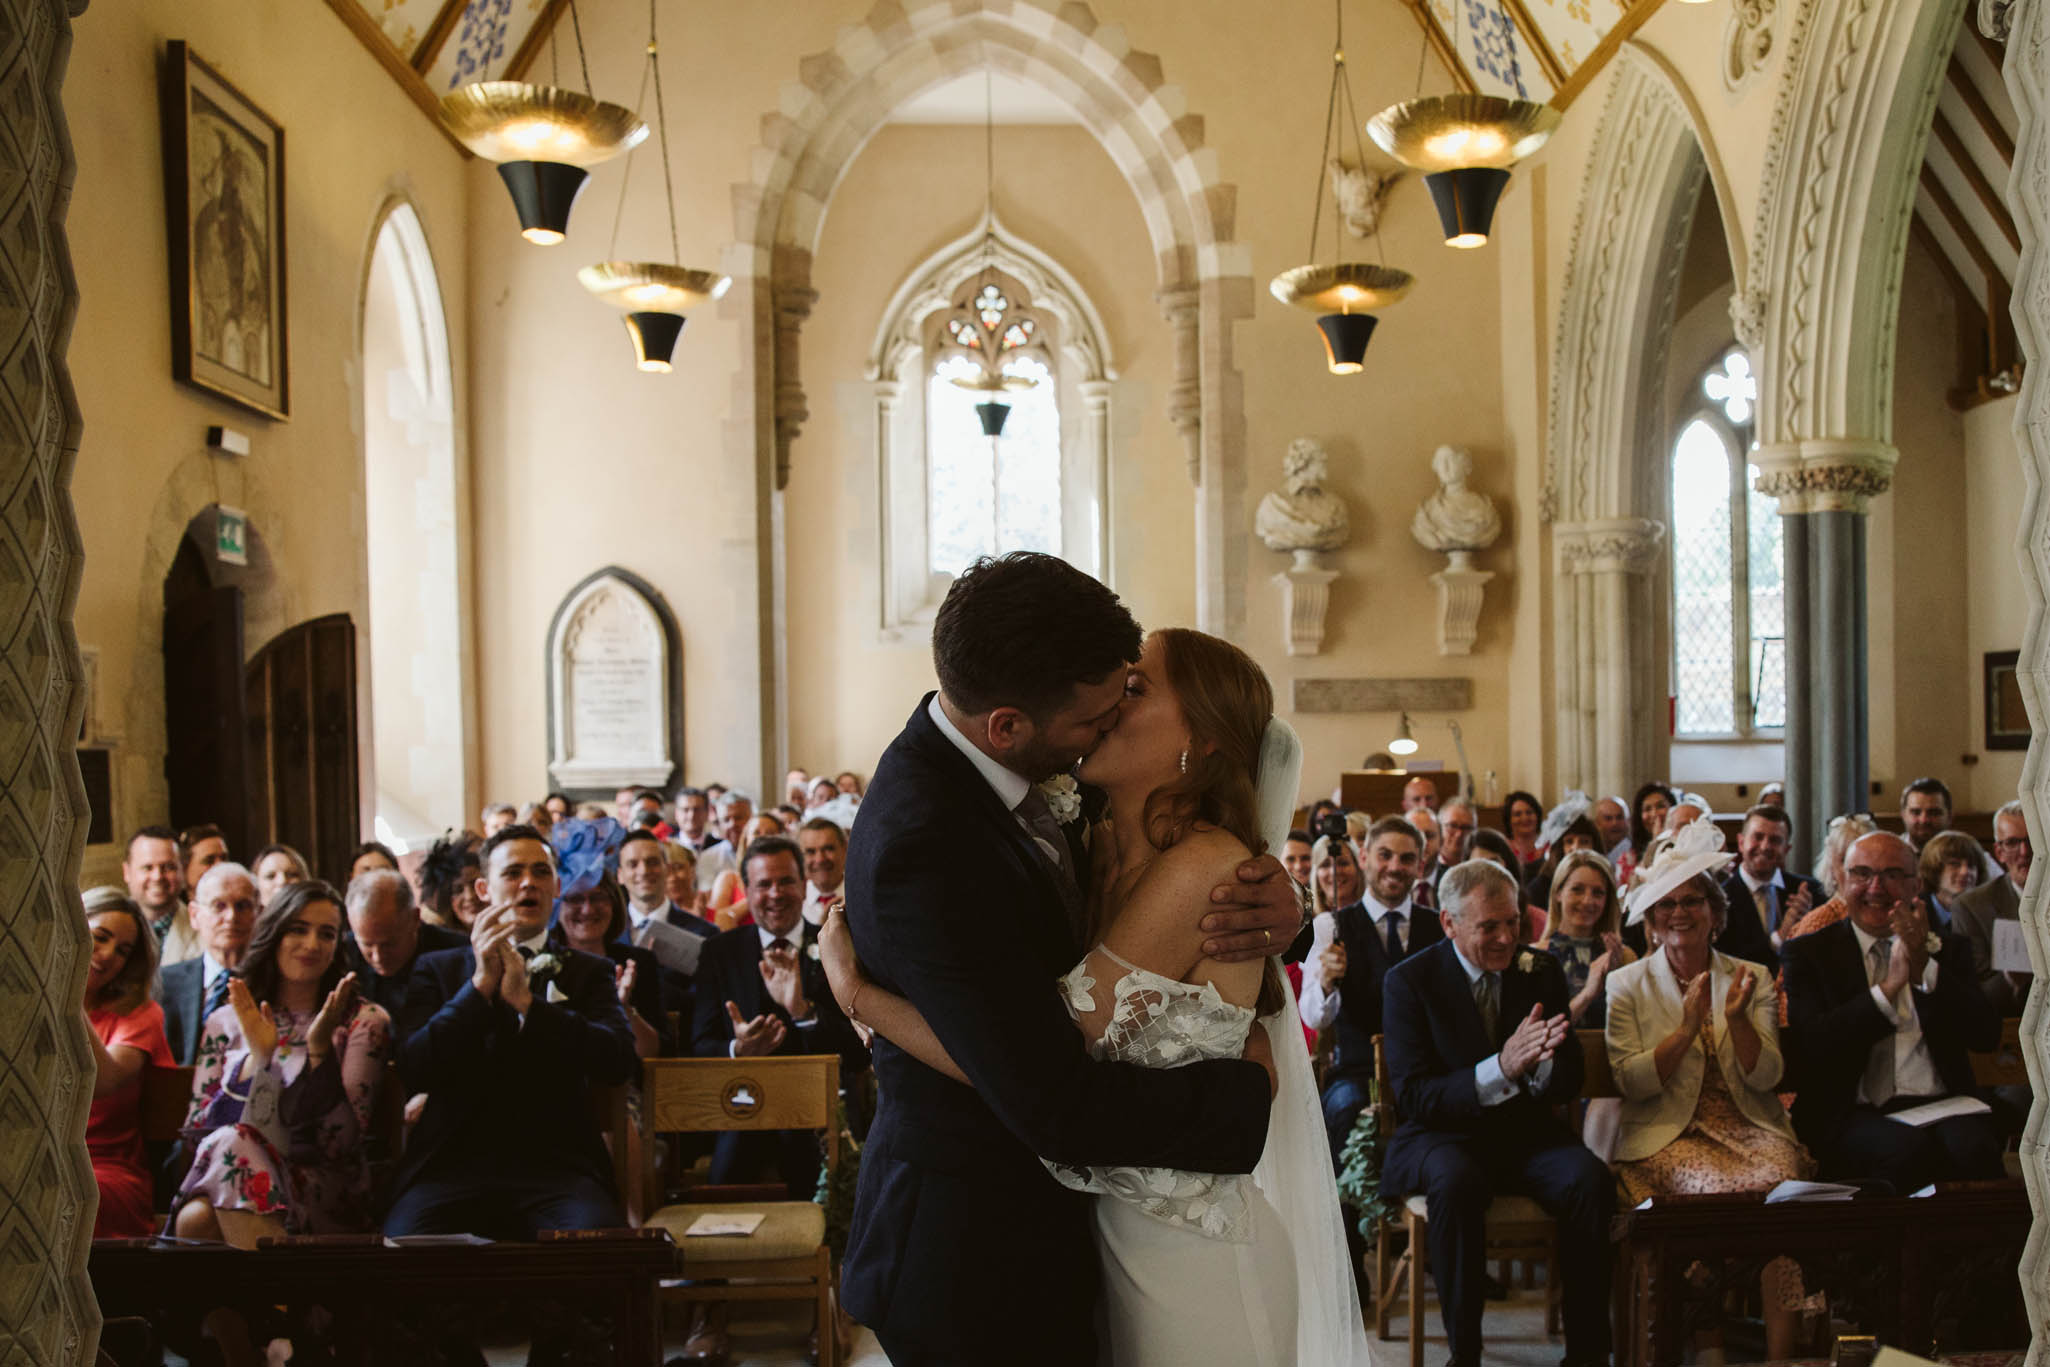 newly weds kissing in church